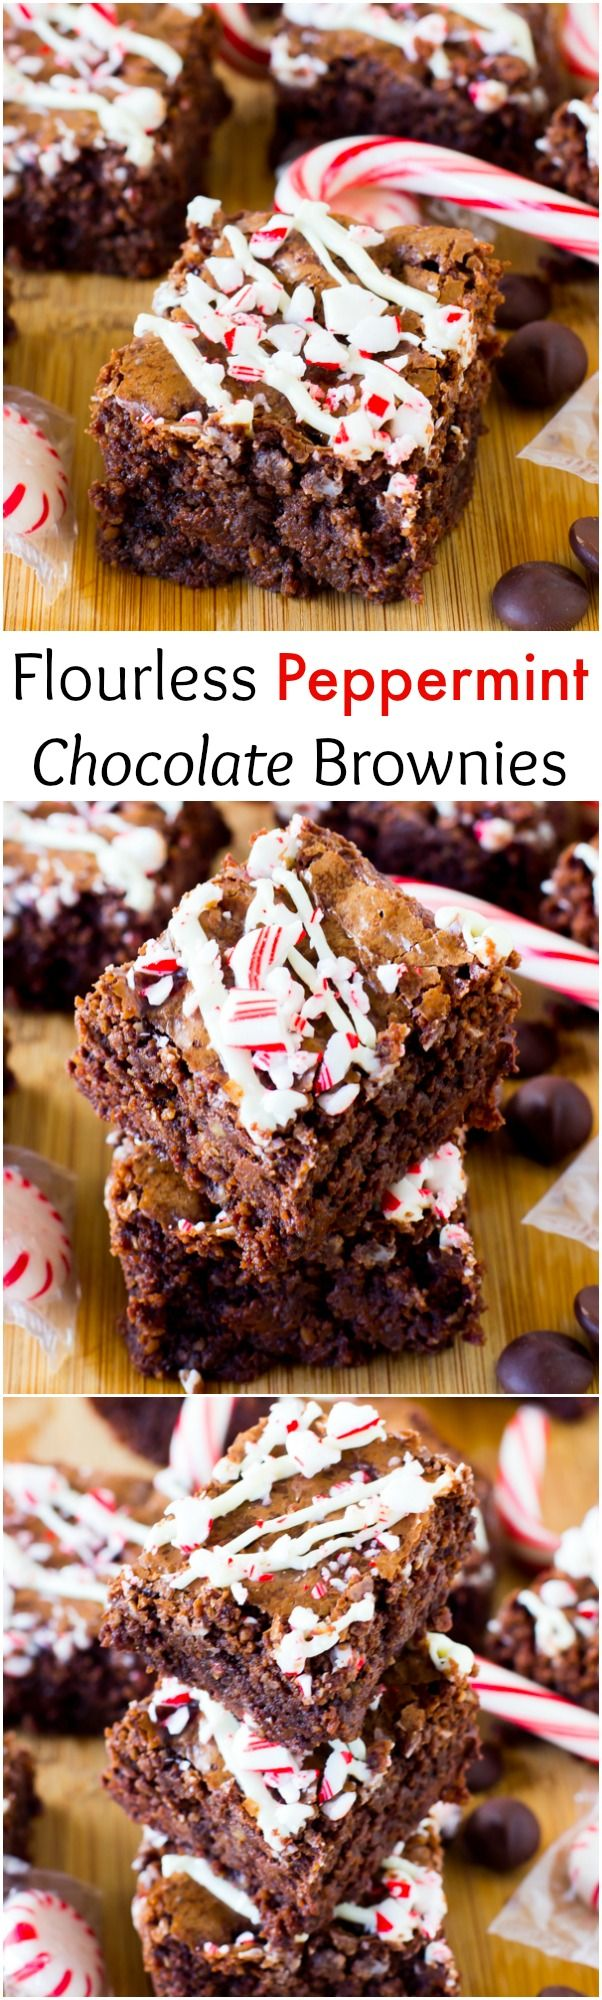 These Flourless Peppermint Chocolate Brownies are incredibly chewy, fudgy and full of chocolate and drizzled with white chocolate. They are SO decadent! #brownies #flourless #peppermint #chocolate #Christmasdesserts #glutenfree